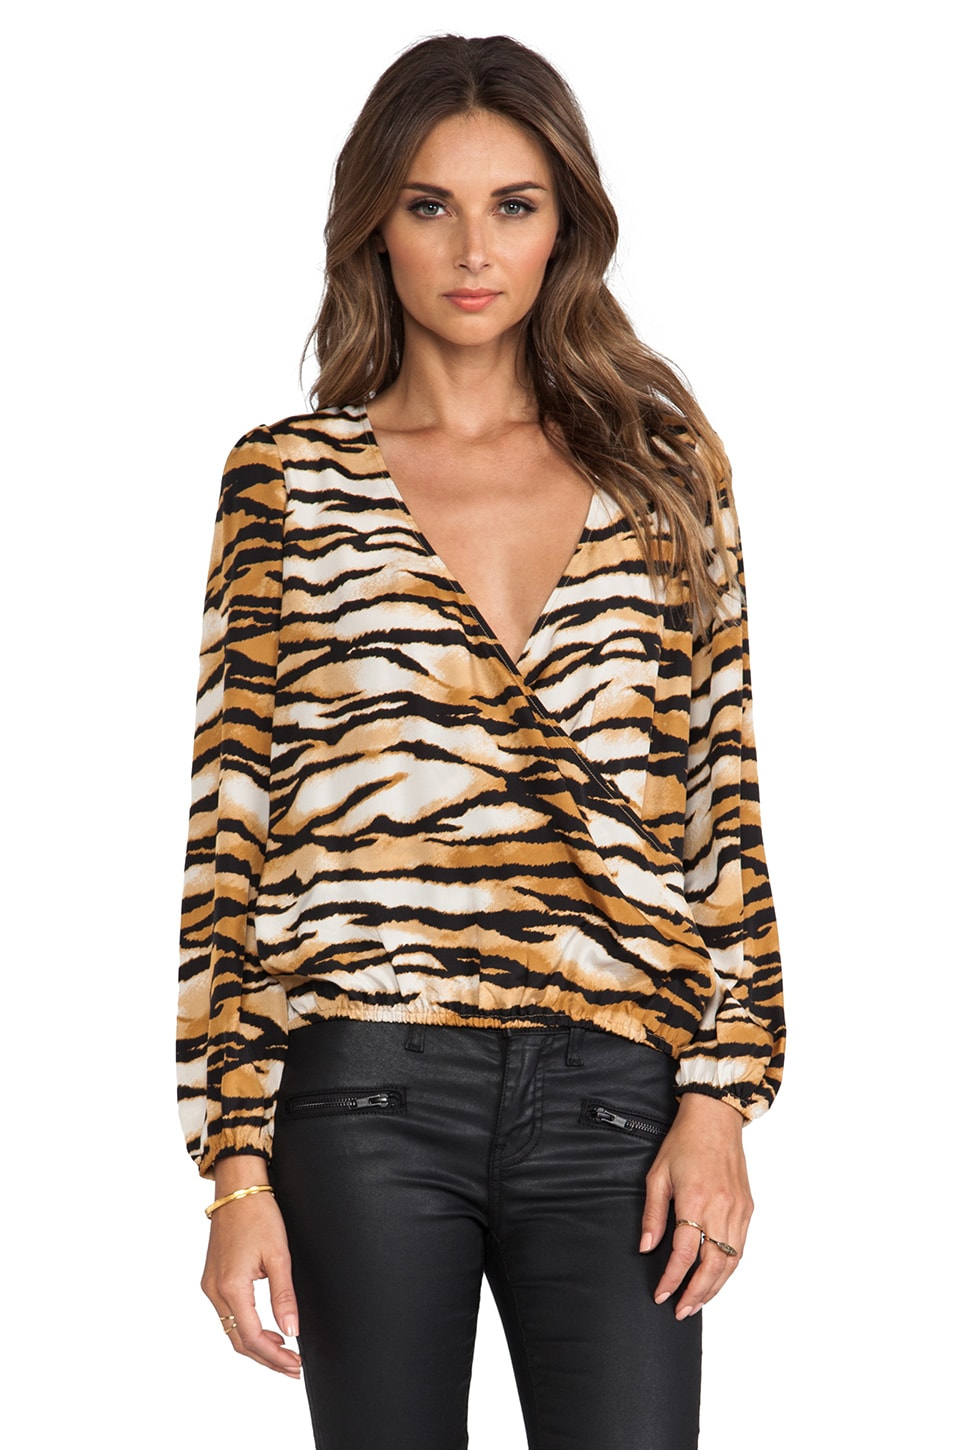 Lovers + Friends Lovely Long sleeve Top in Wildcat